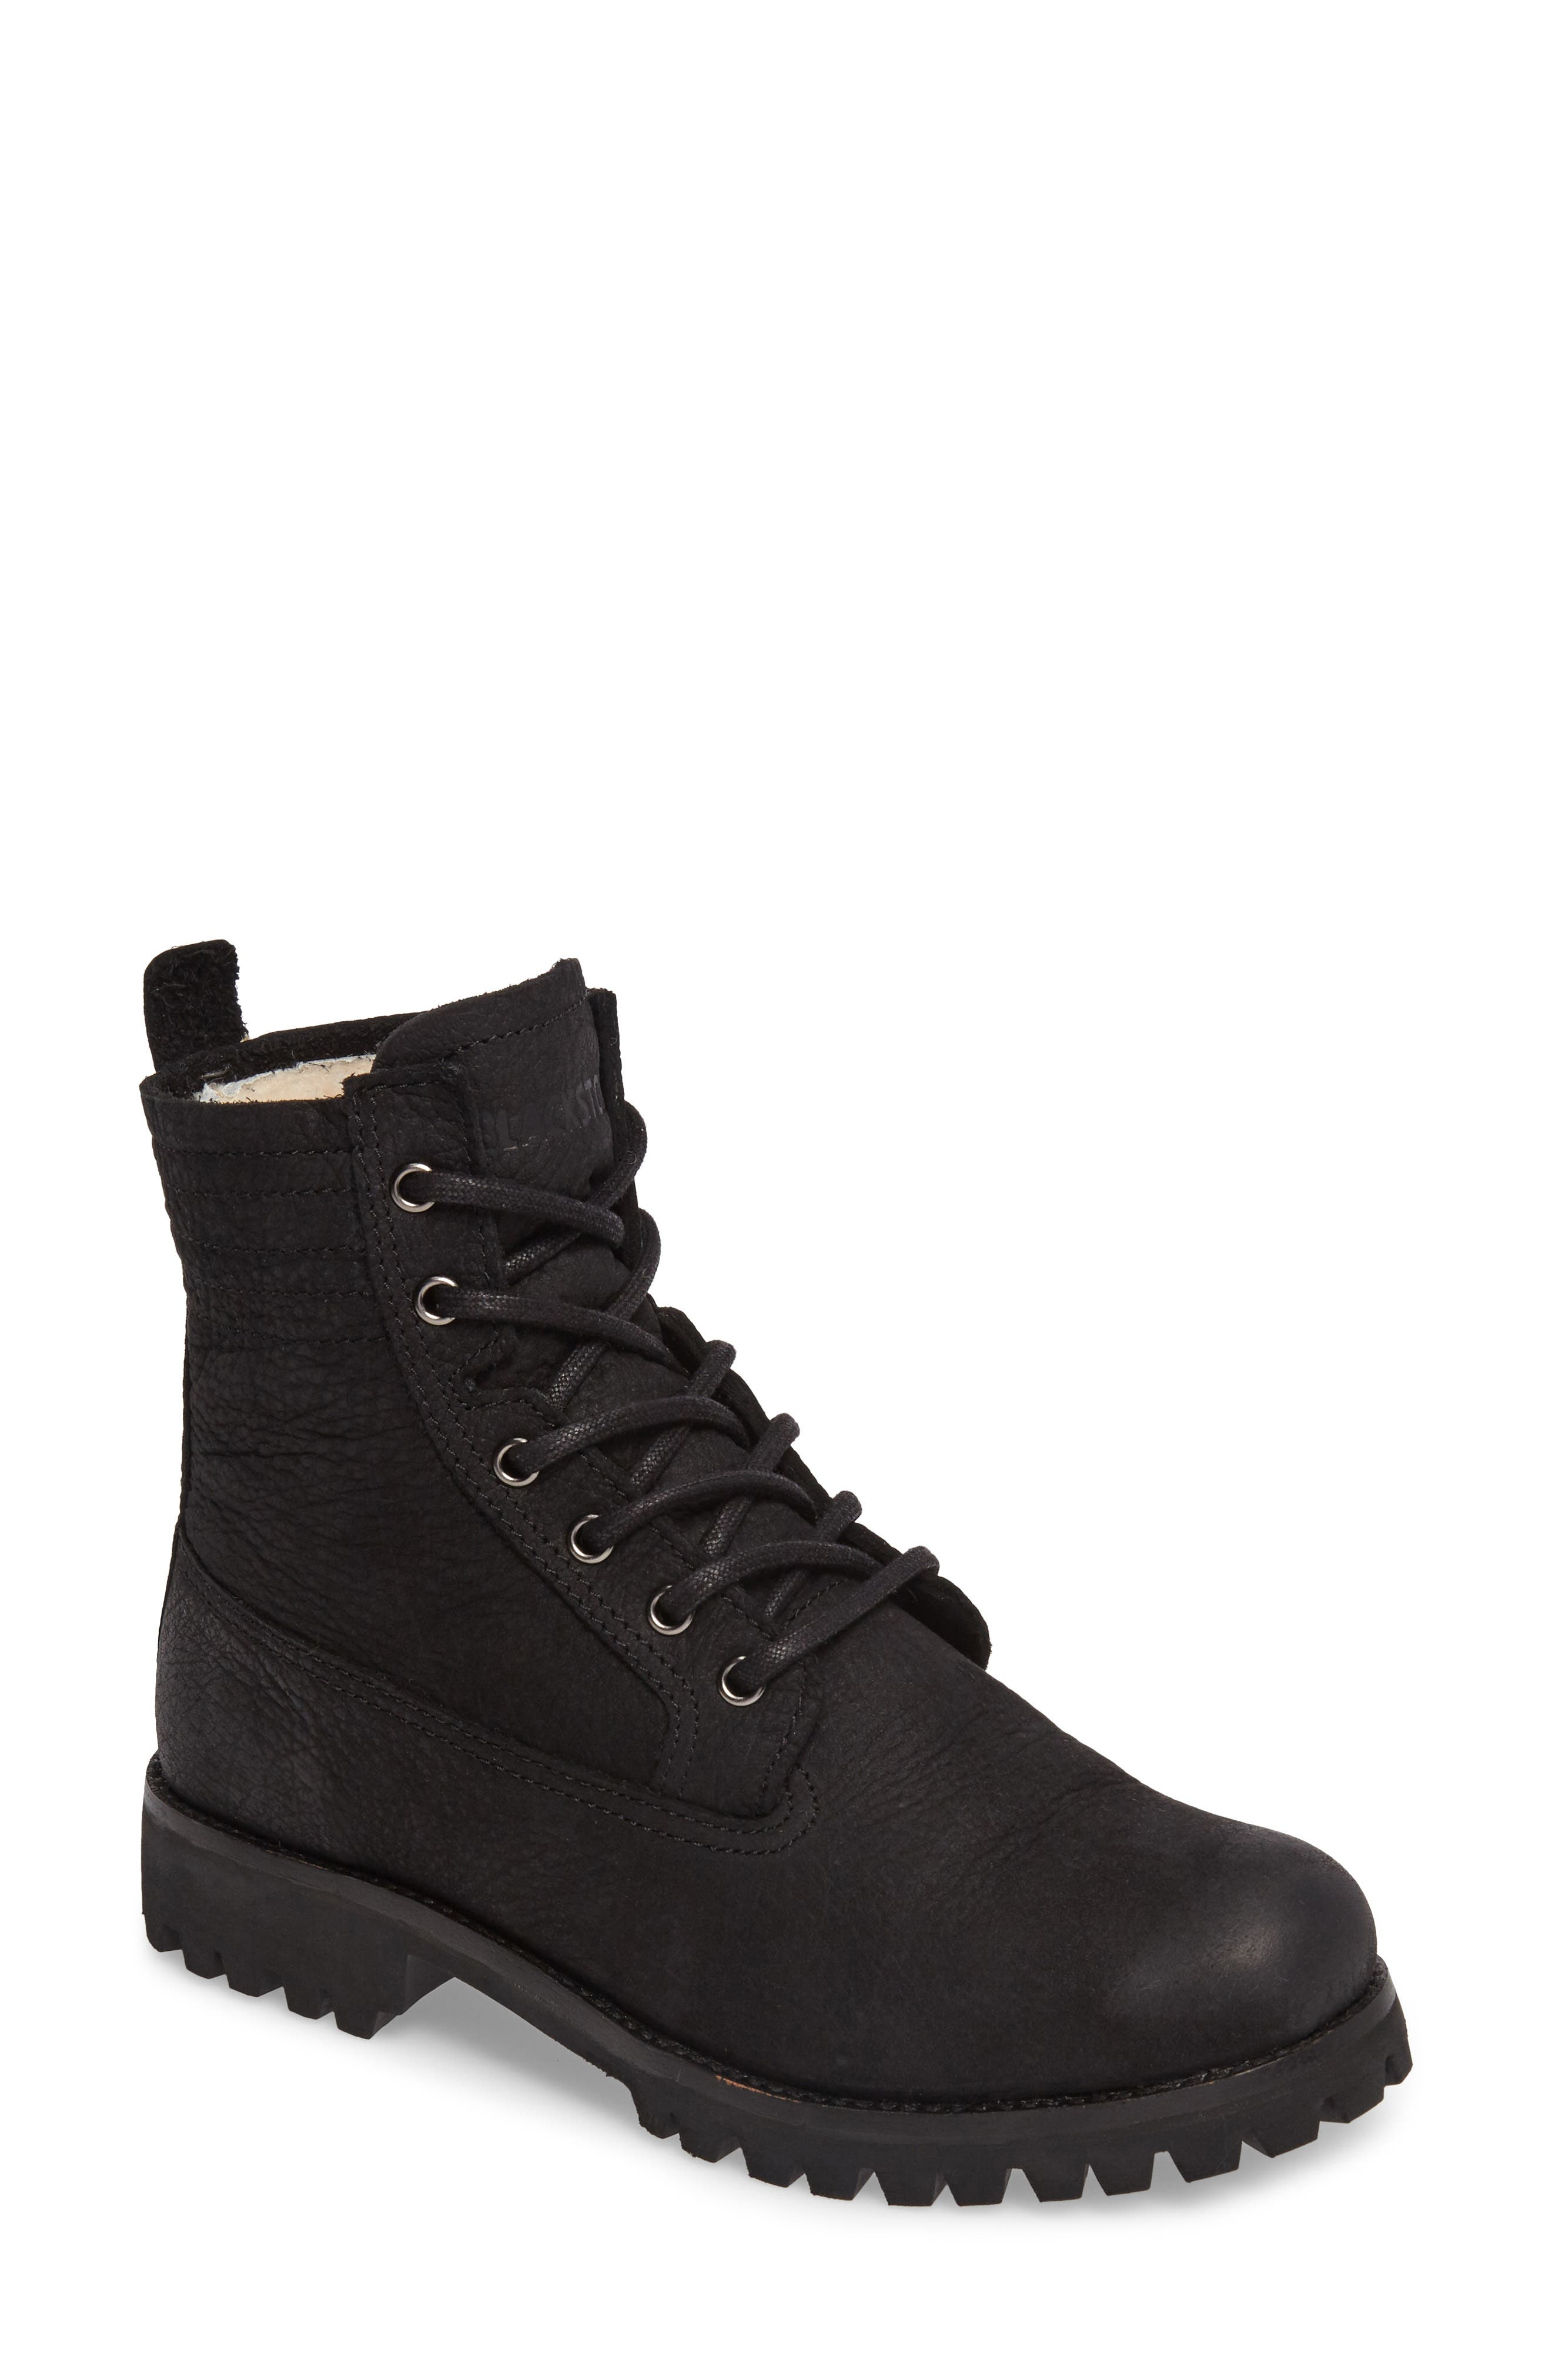 OL22 Lace-Up Boot with Genuine Shearling Lining,                         Main,                         color, Black Leather